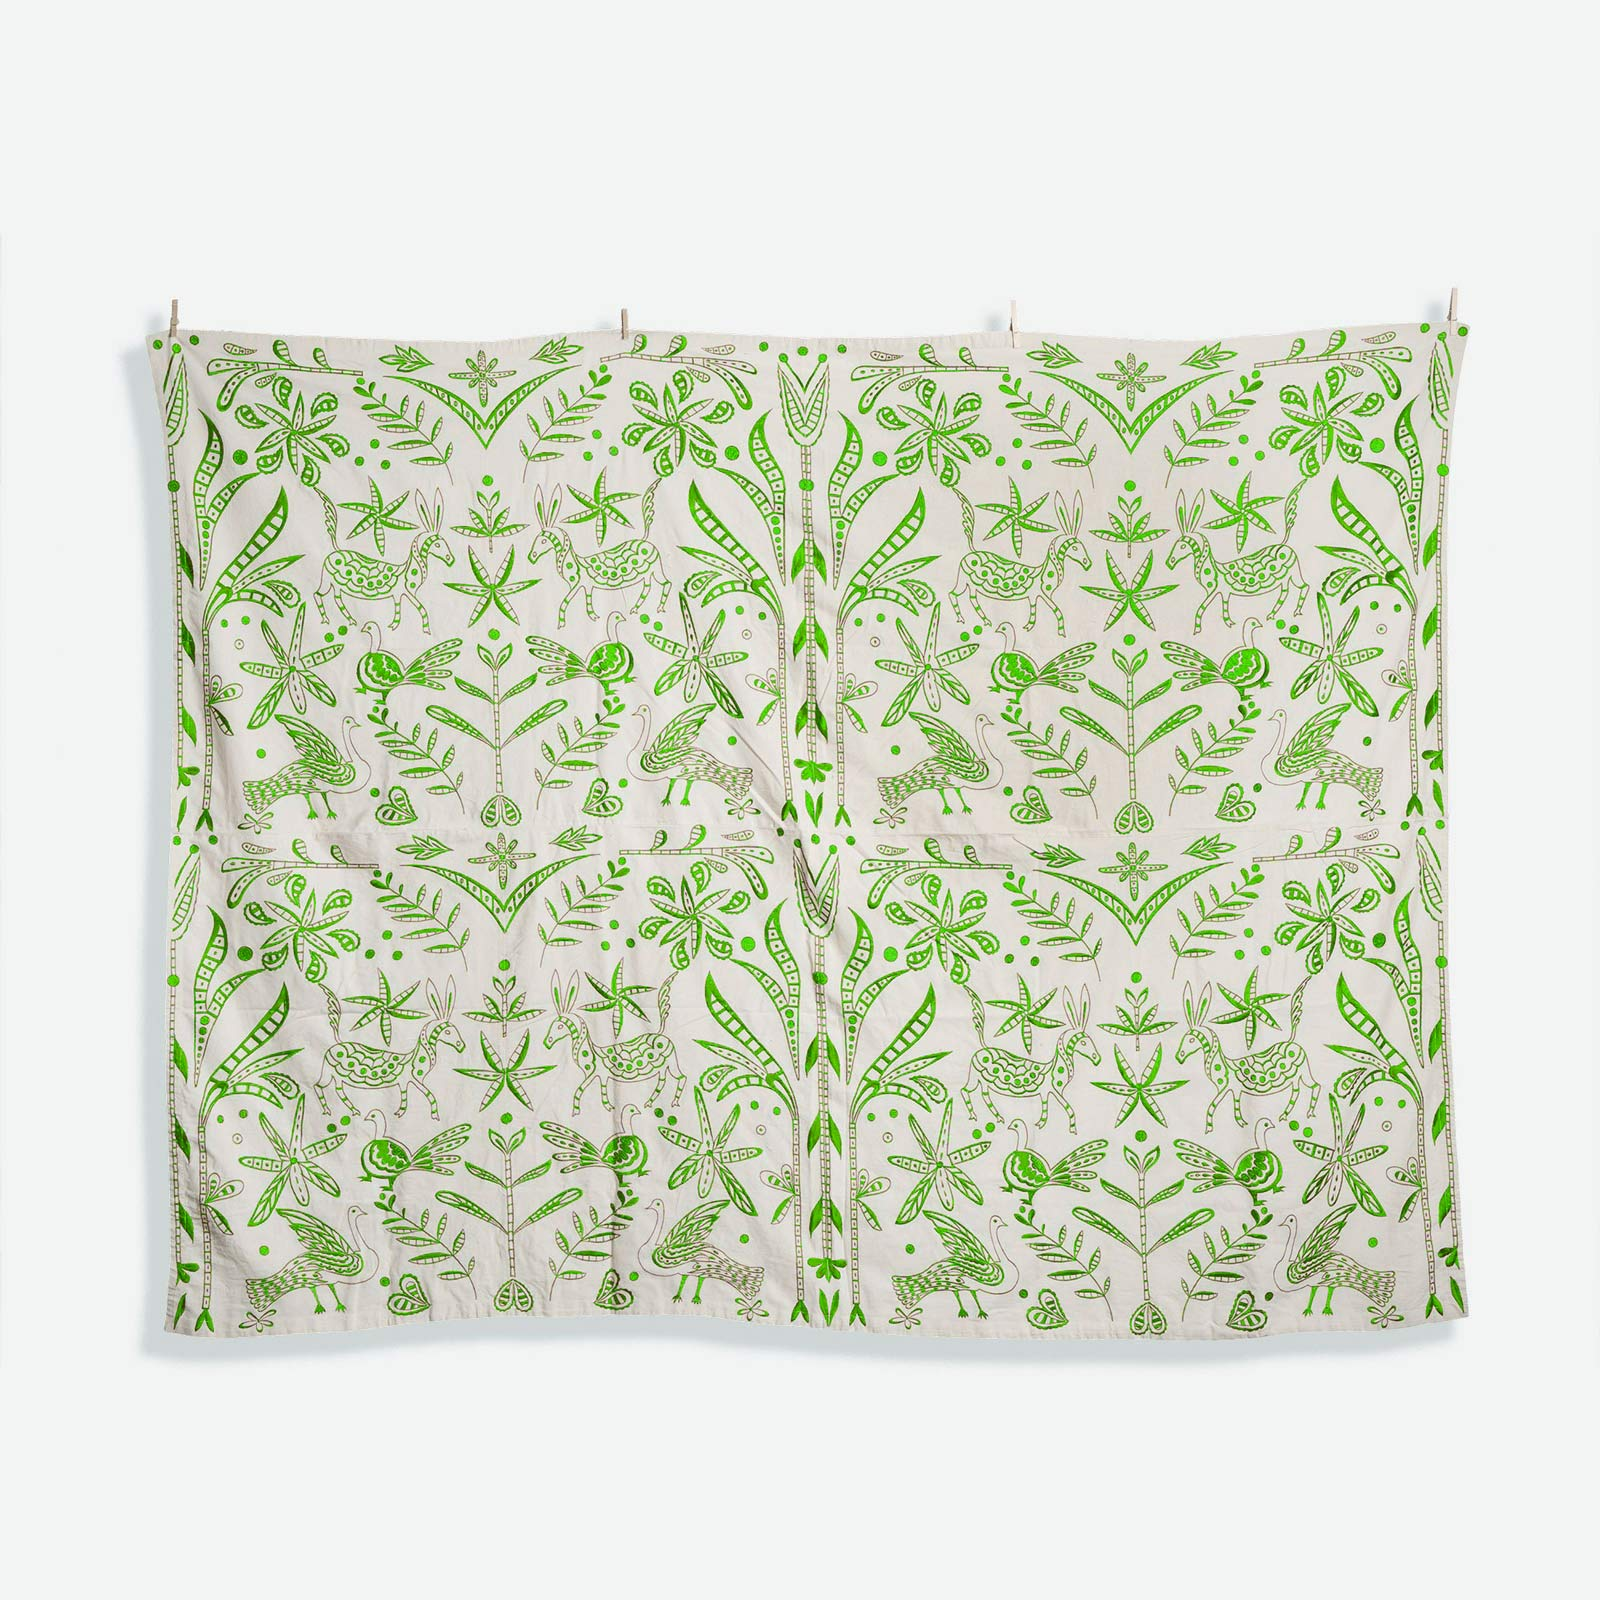 Embroidered Tablecloth Veracruz Green